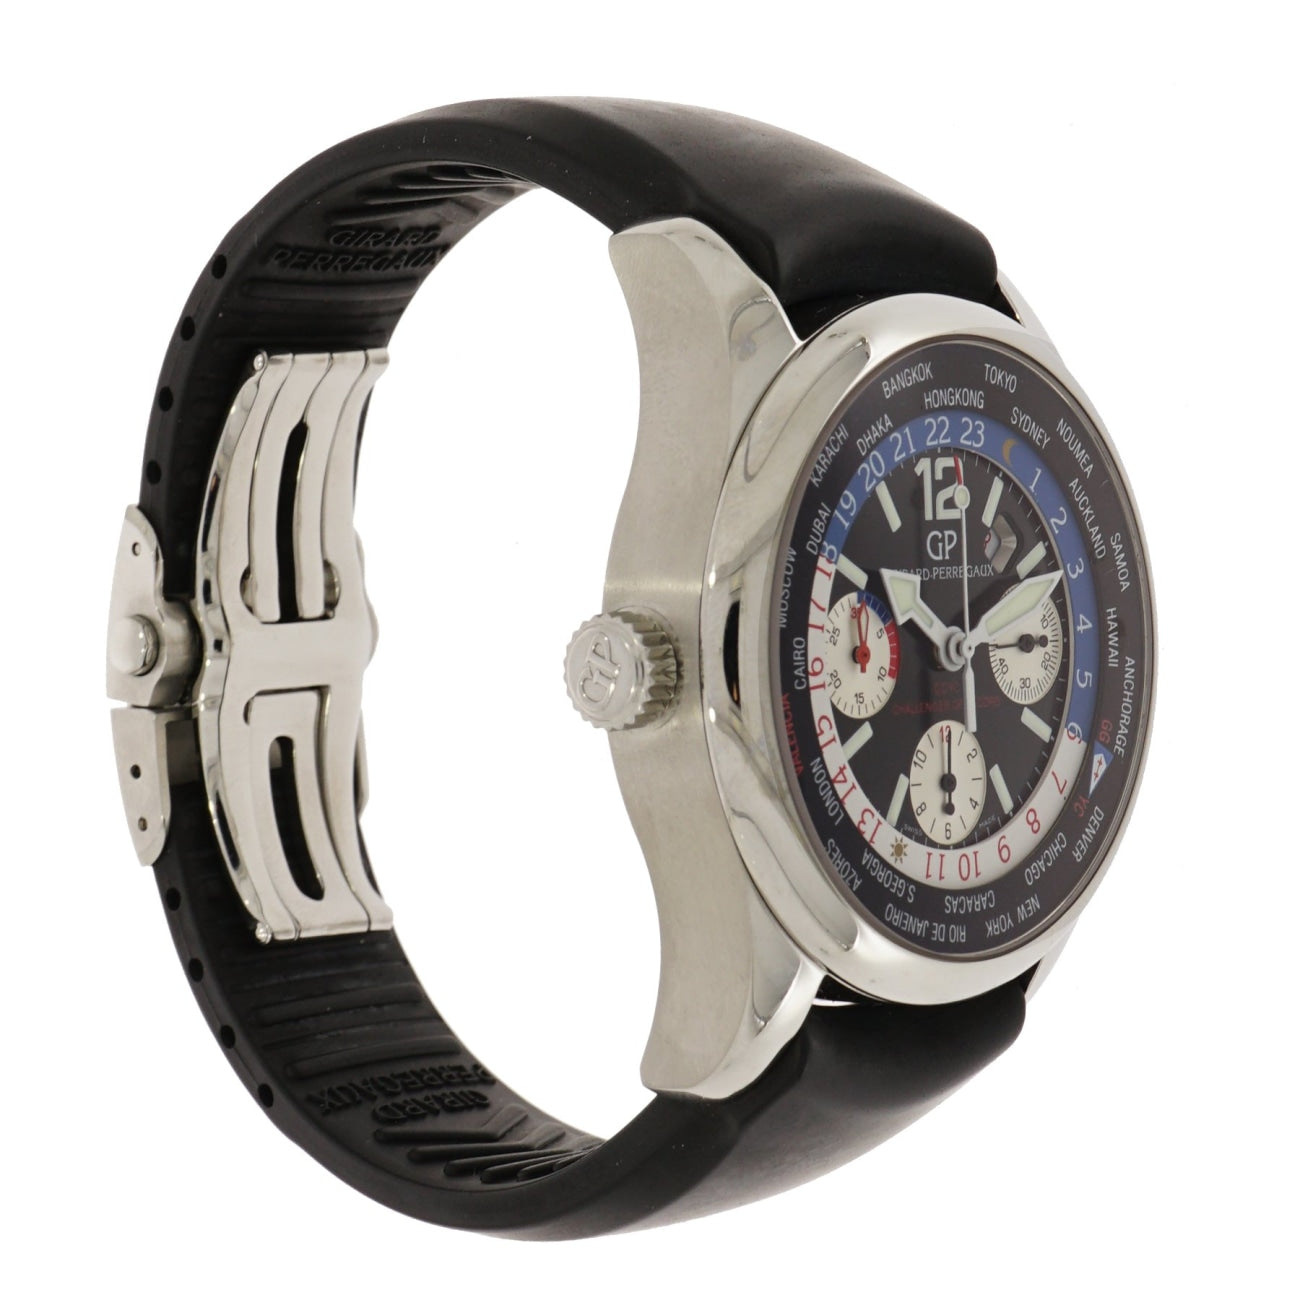 Pre-Owned Girard Perregaux Watches - WWTC Limited Edition | Manfredi Jewels